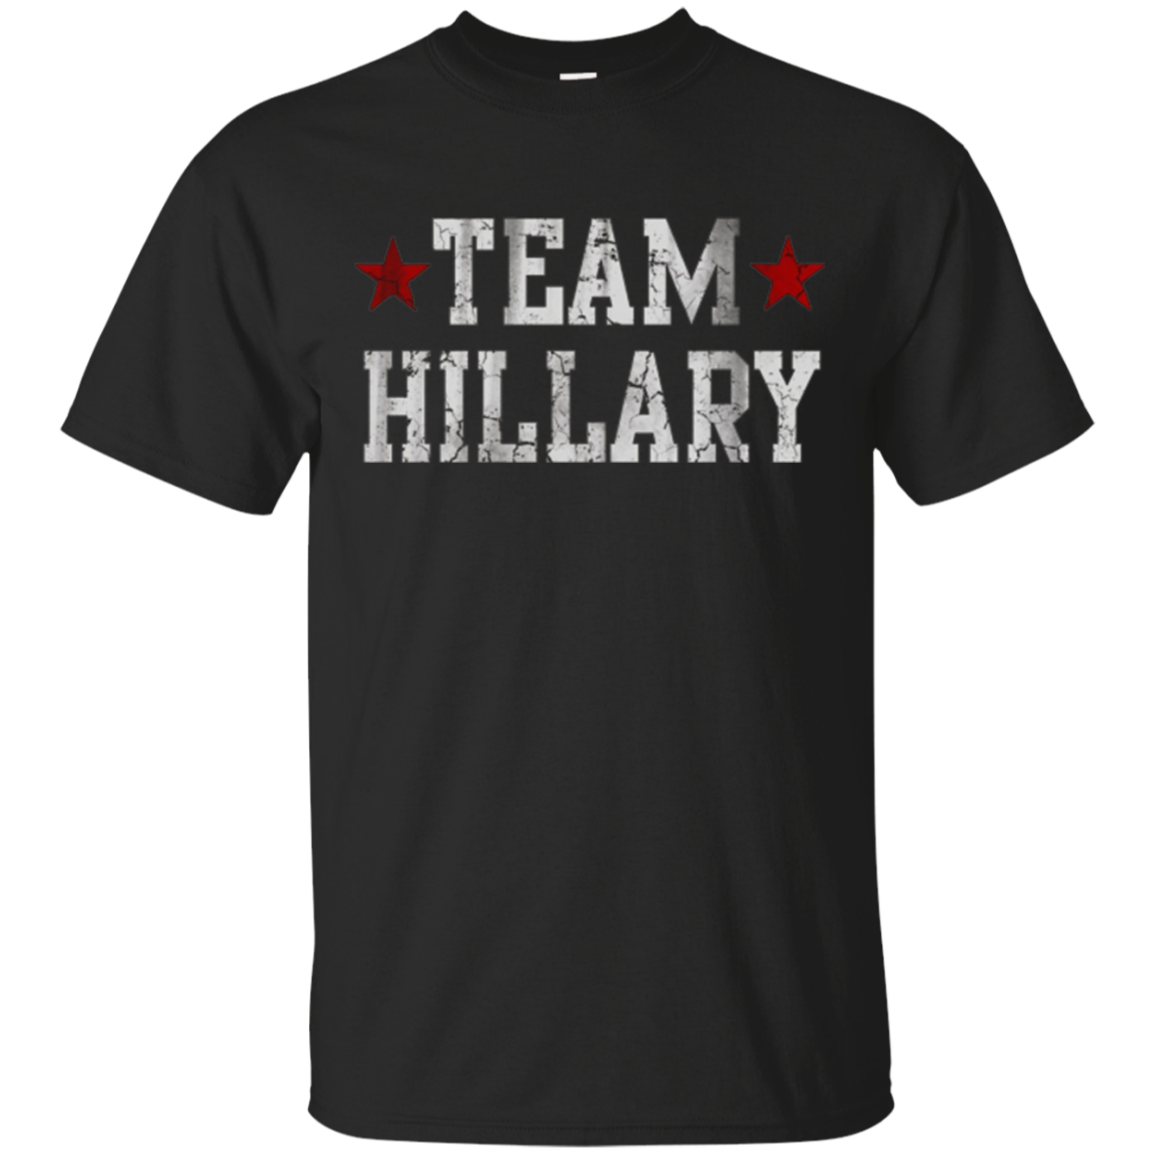 2018 Team Hillary Democrat Party Election T Shirt